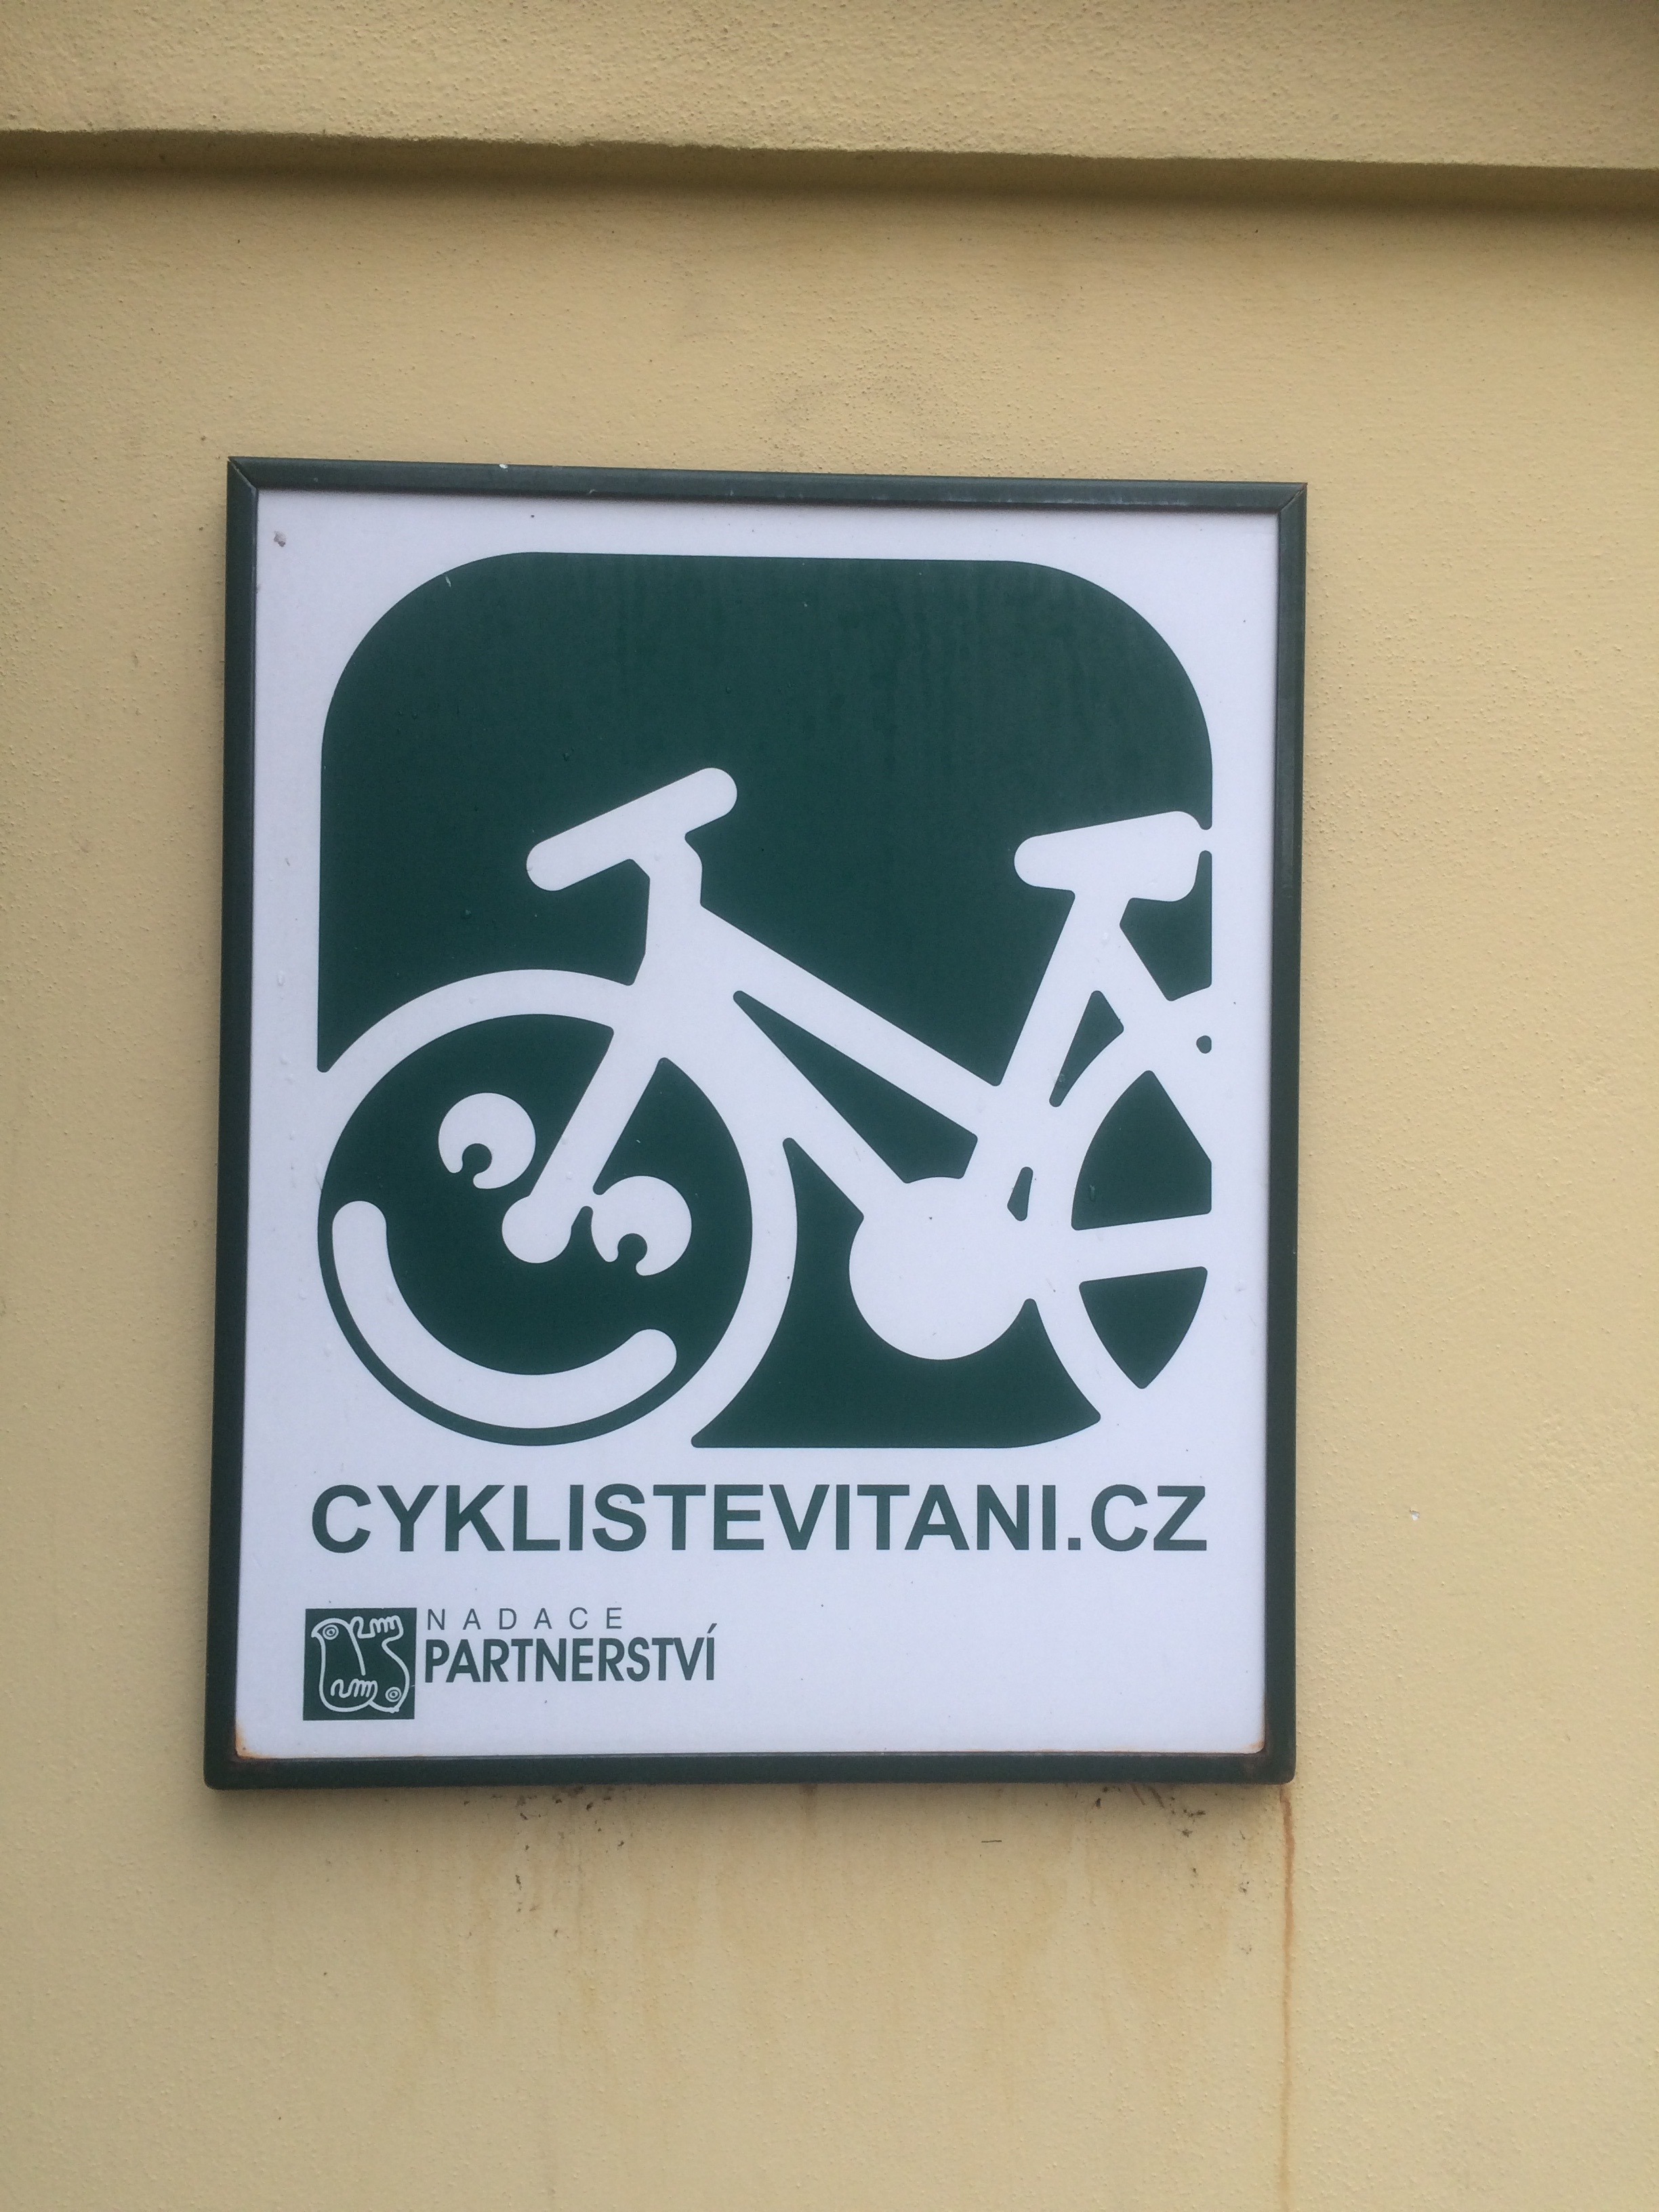 Cycle tourists welcome